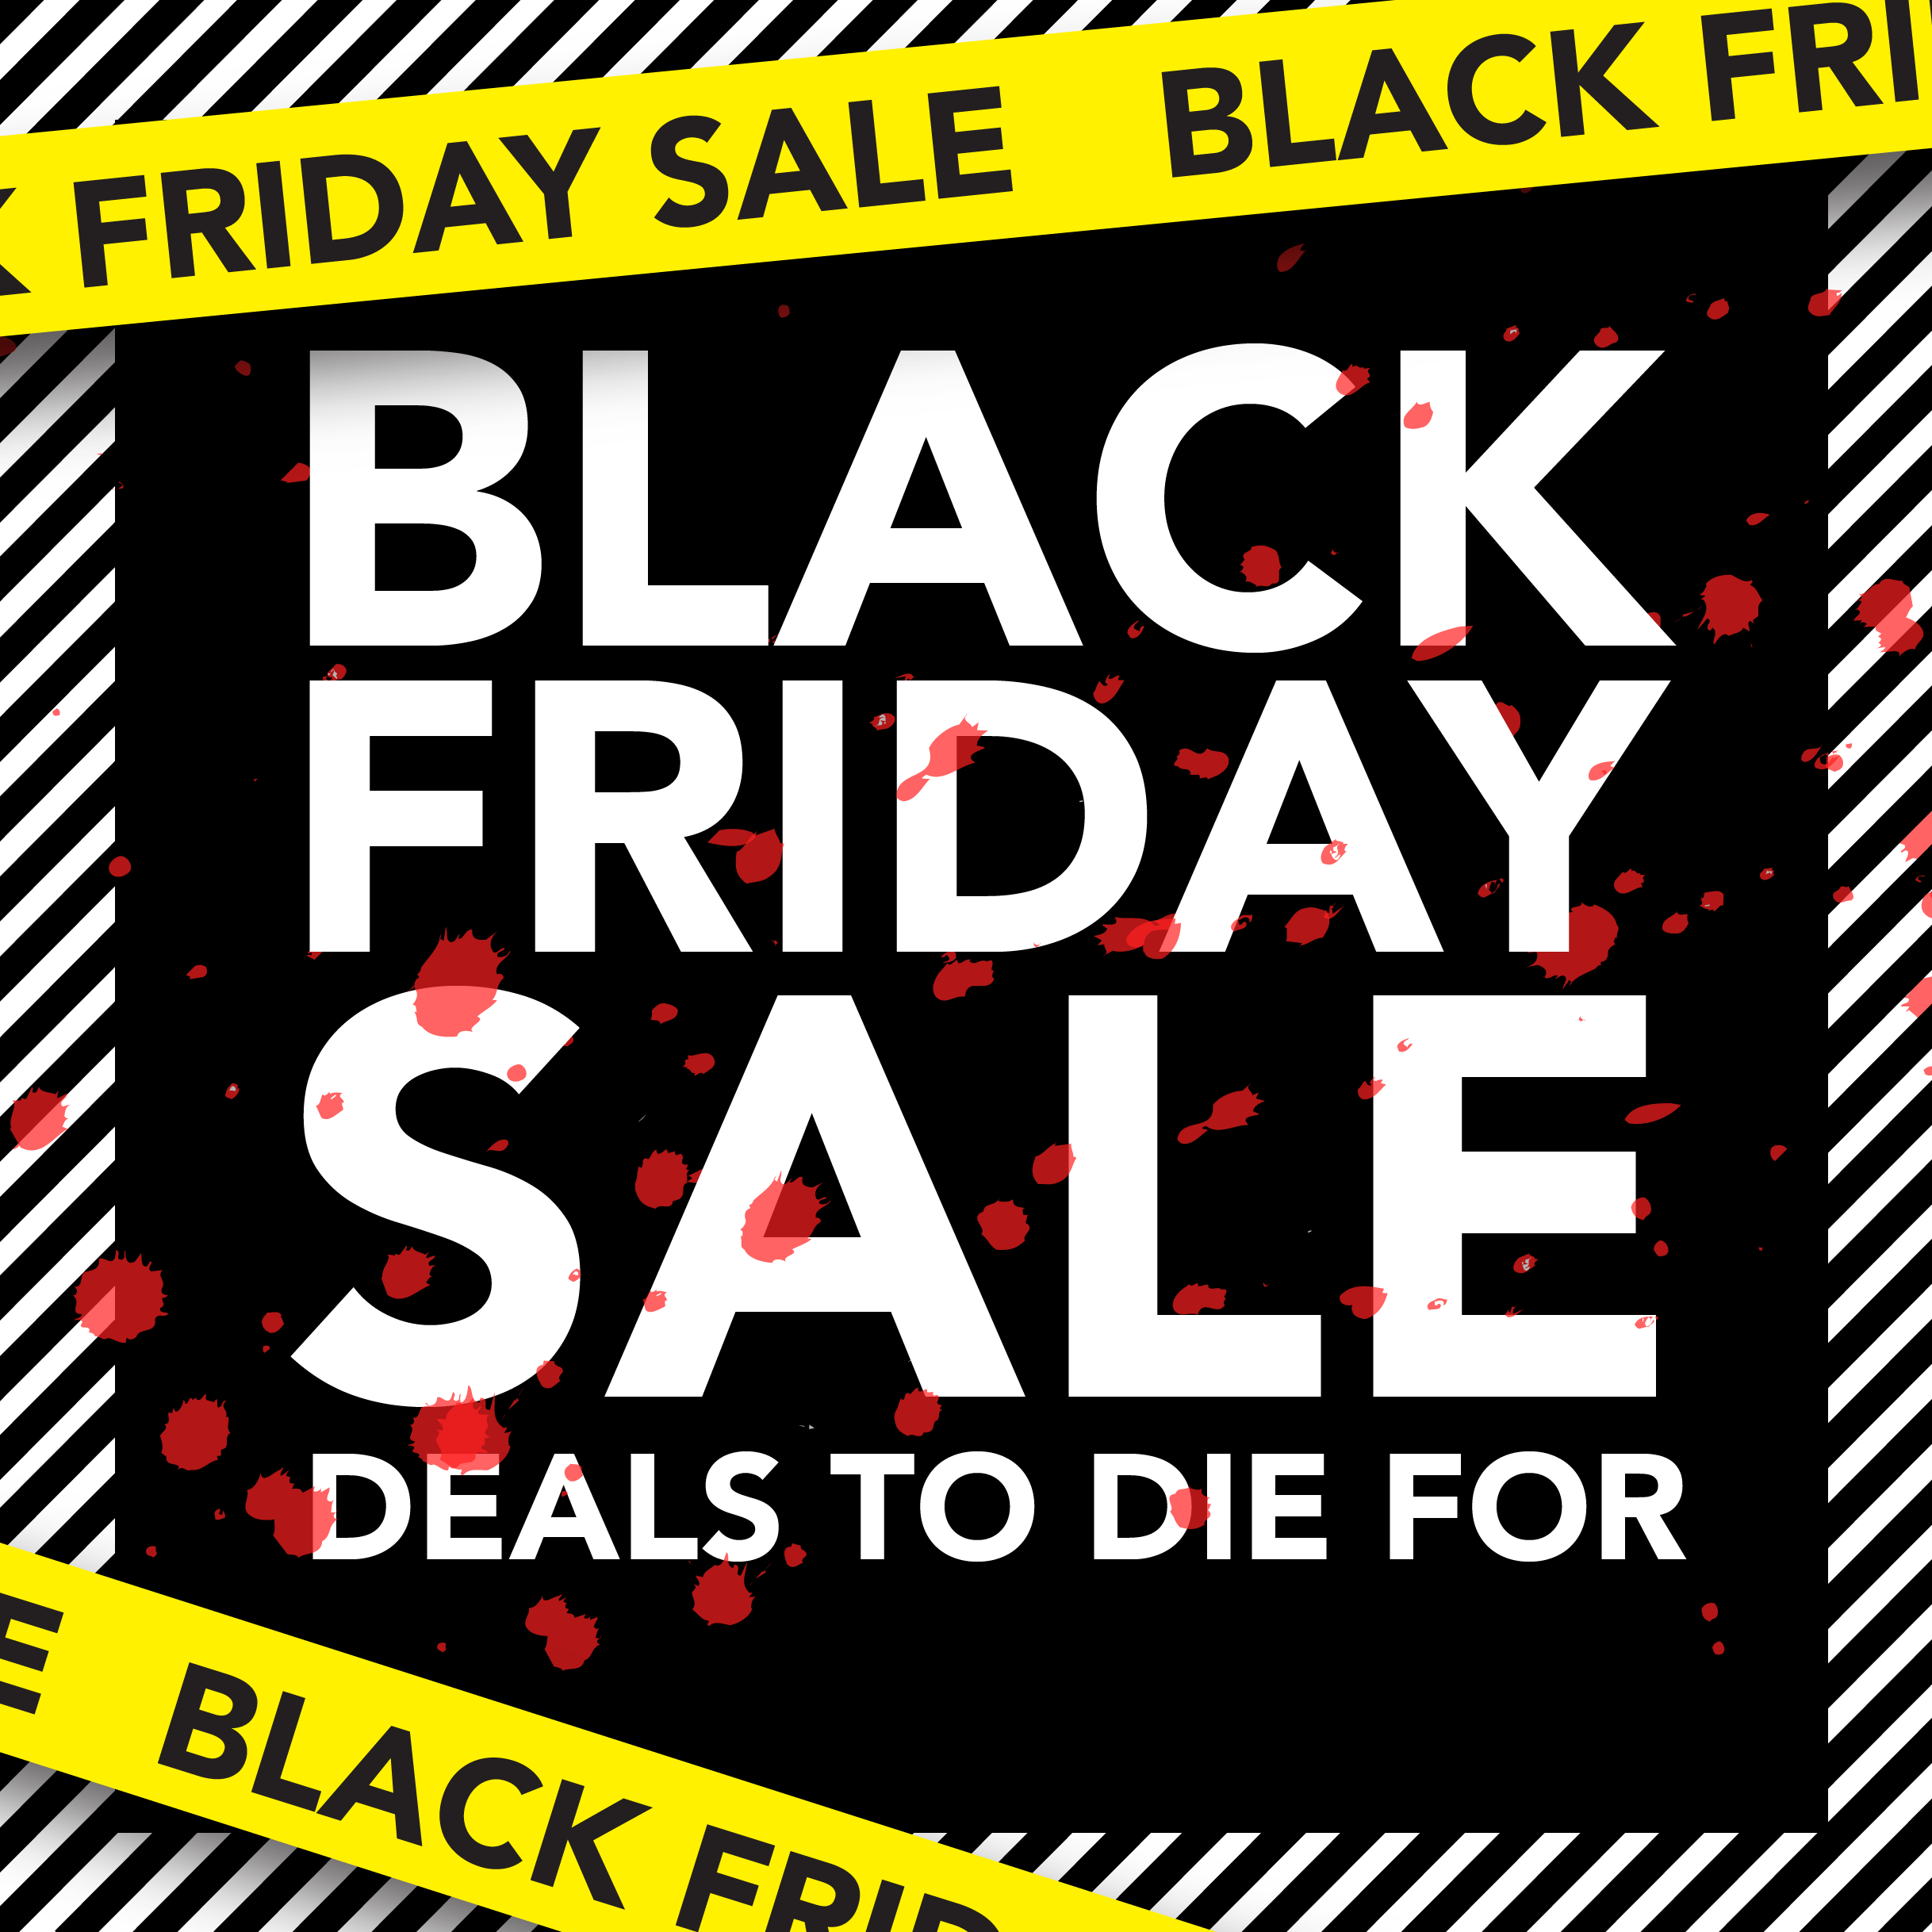 red herring games - black friday 50% off - murder mystery games